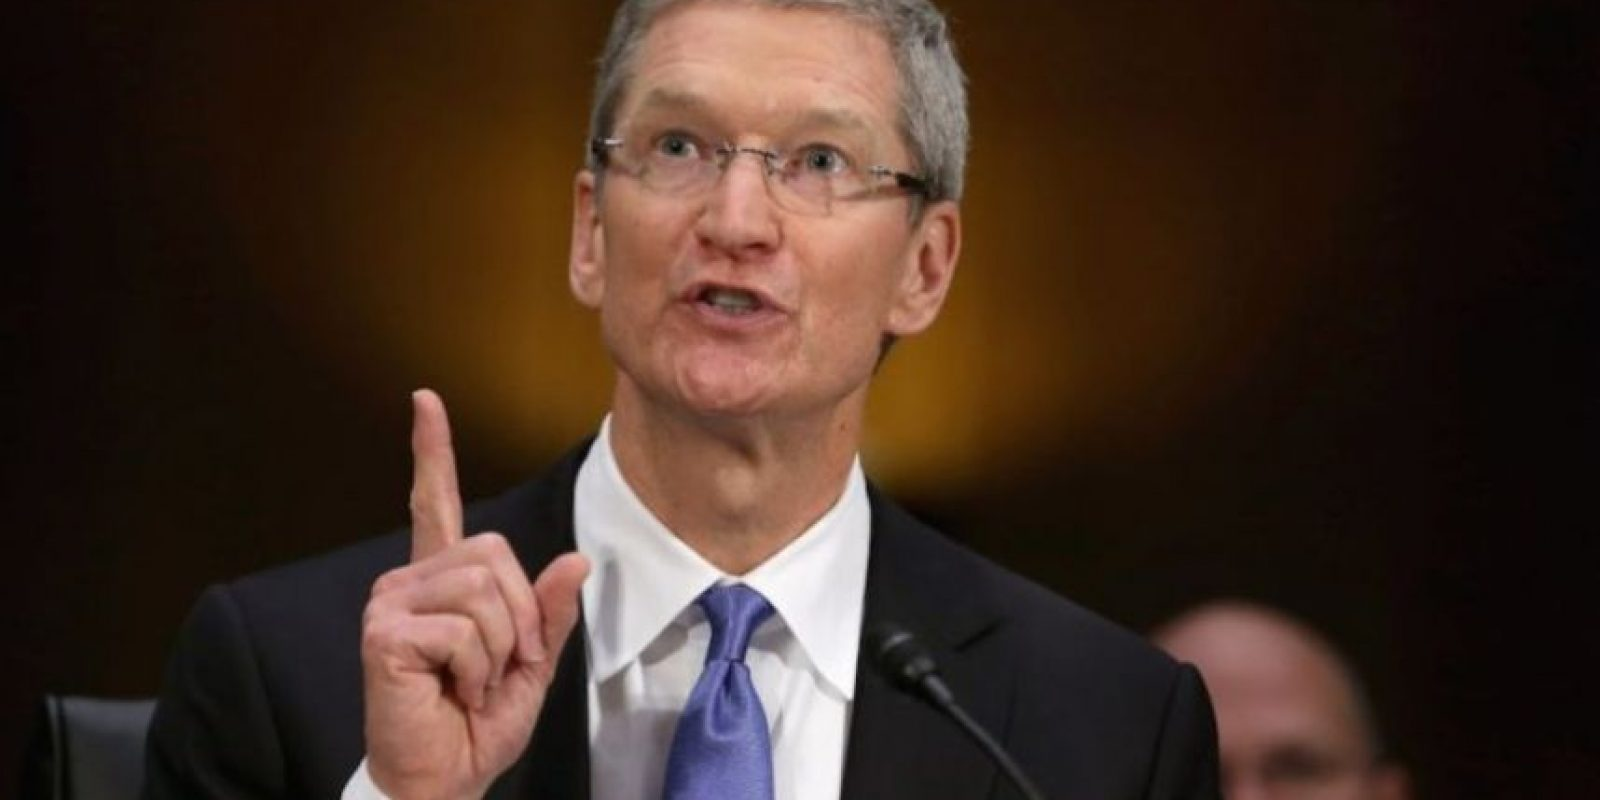 Tim Cook enfureció con usuarios de Twitter. Foto: Getty Images